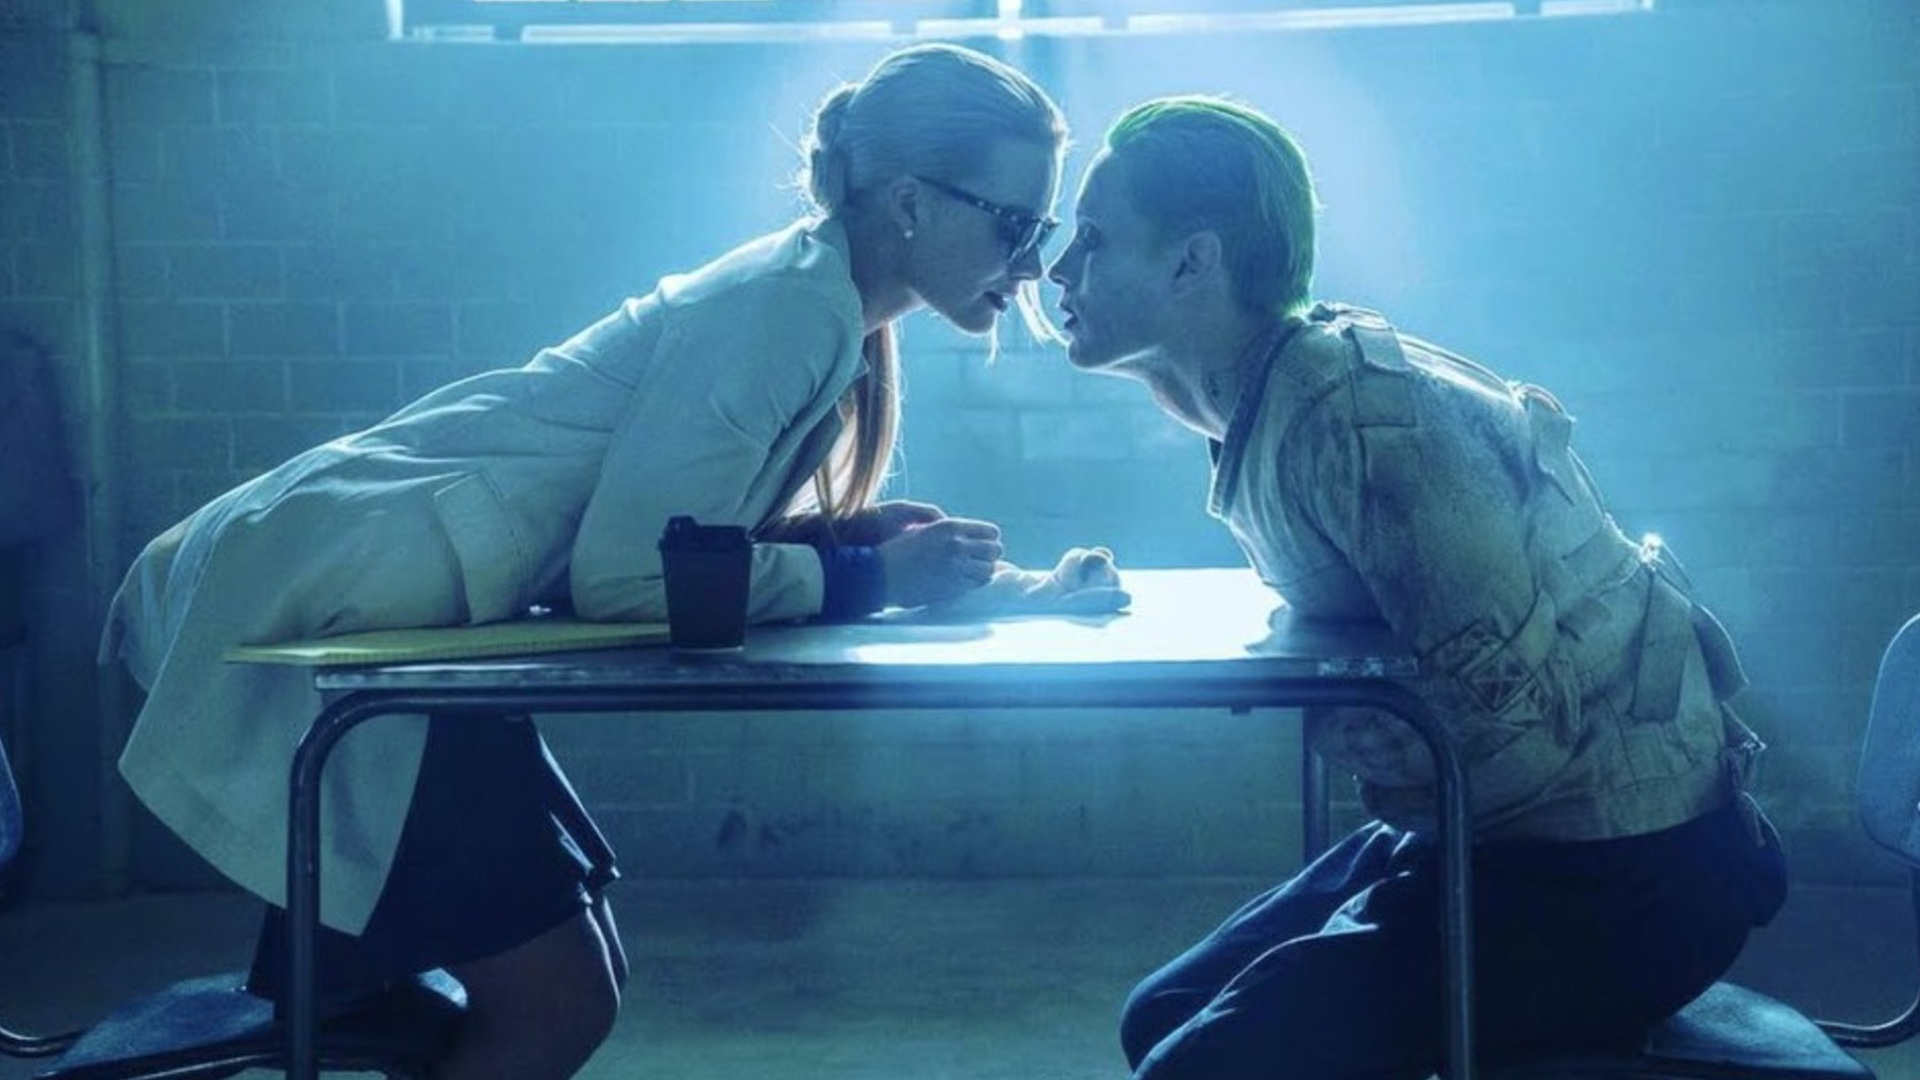 first-details-revealed-for-dcs-joker-and-harley-quinn-movie-which-will-have-a-bad-santa-meets-this-is-us-tone-social.jpg